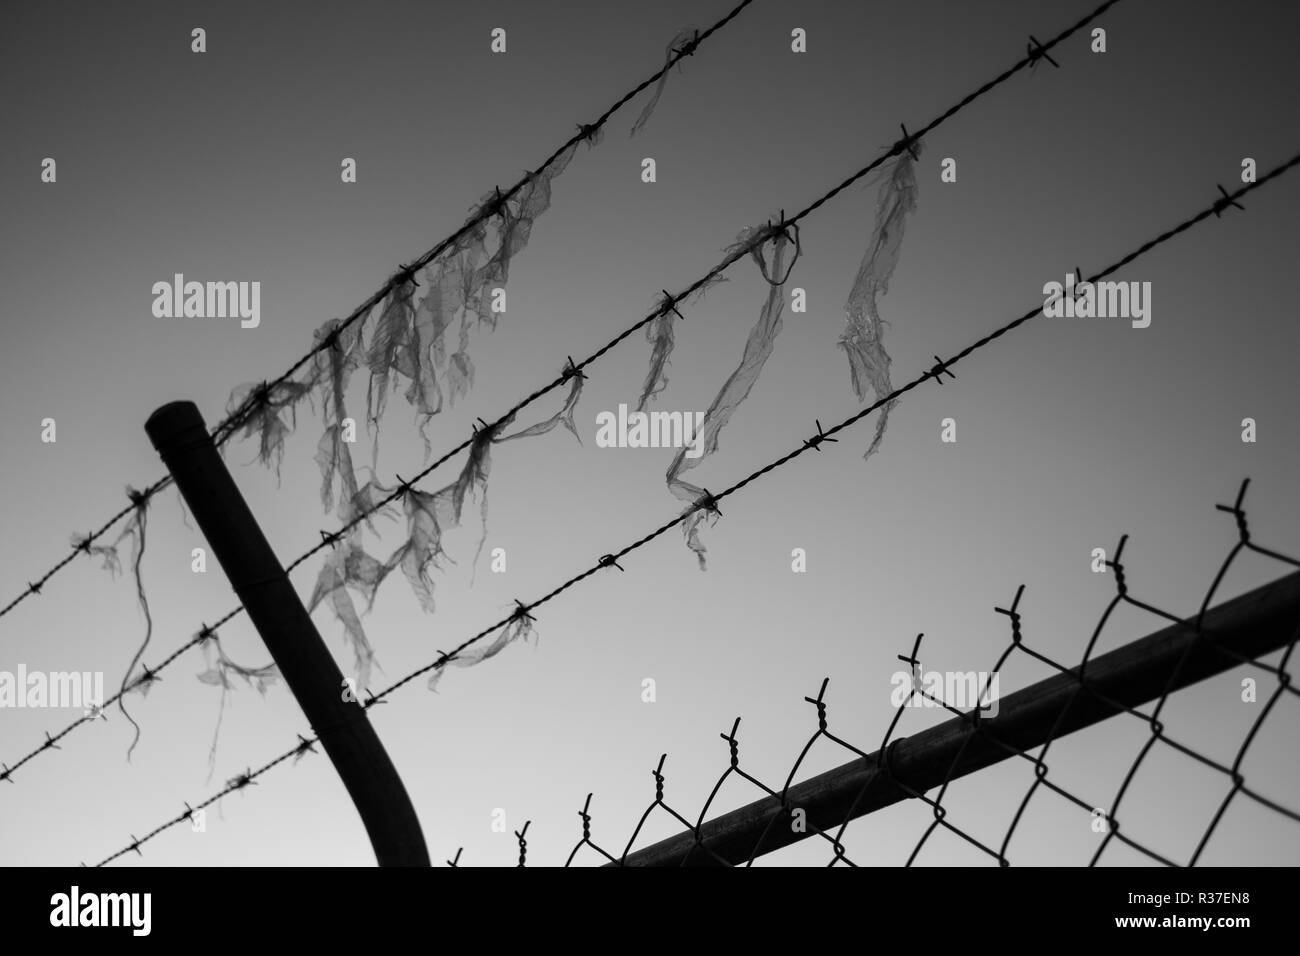 Barbed wire and fence - Stock Image